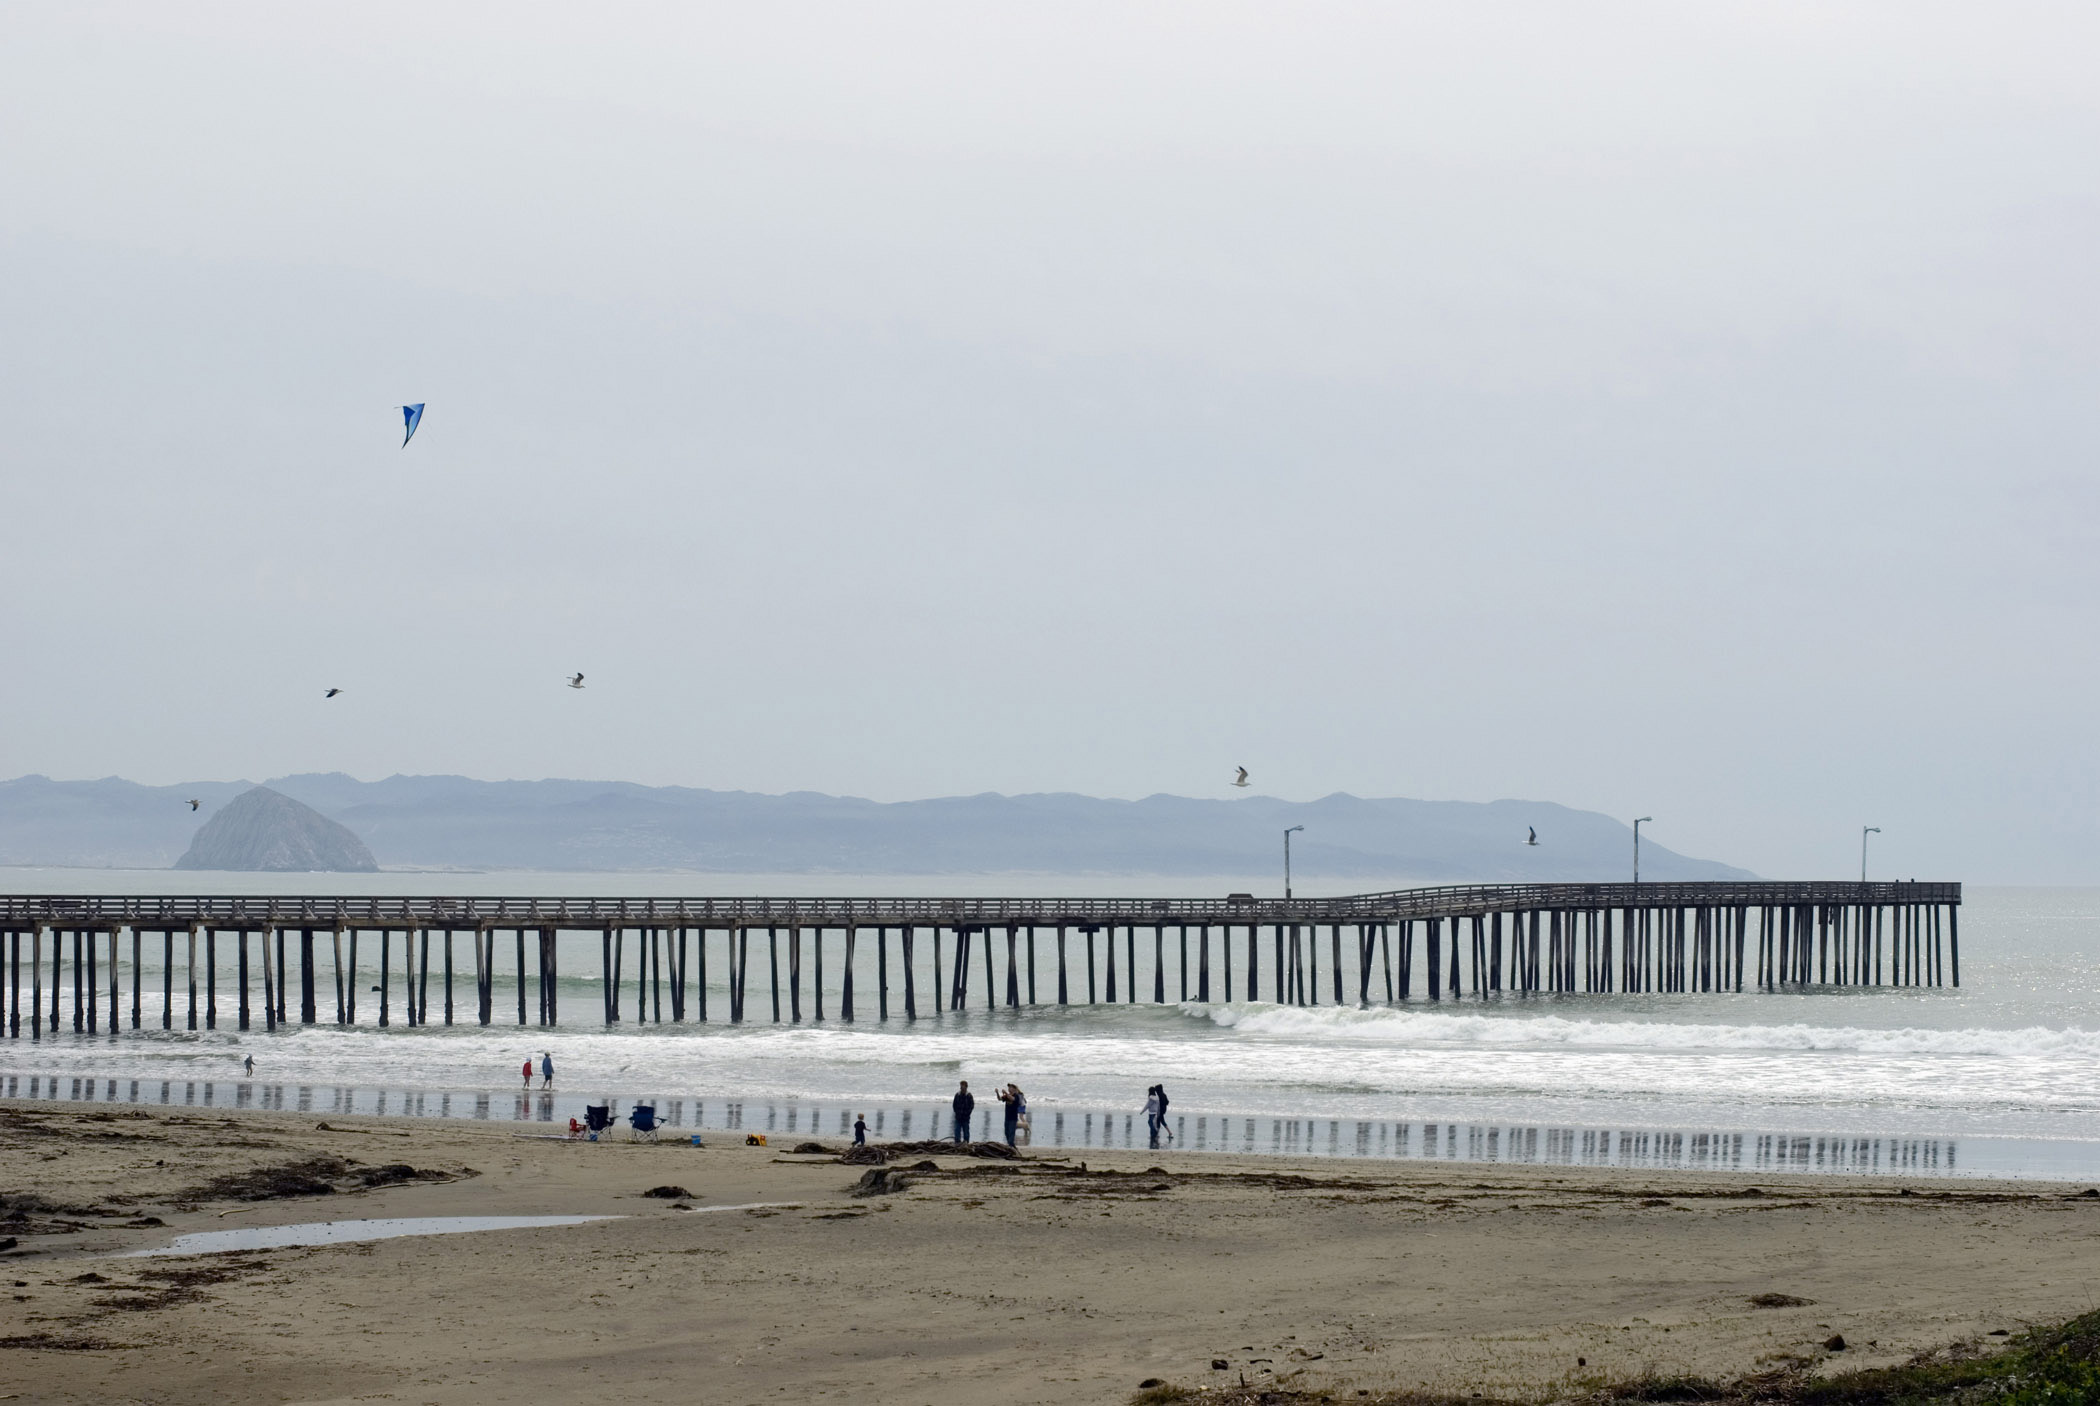 Tourists at Beautiful Cayucos Pier. Captured in Extensive View with Morro Rock Afar. Isolated on Foggy Sky Background.